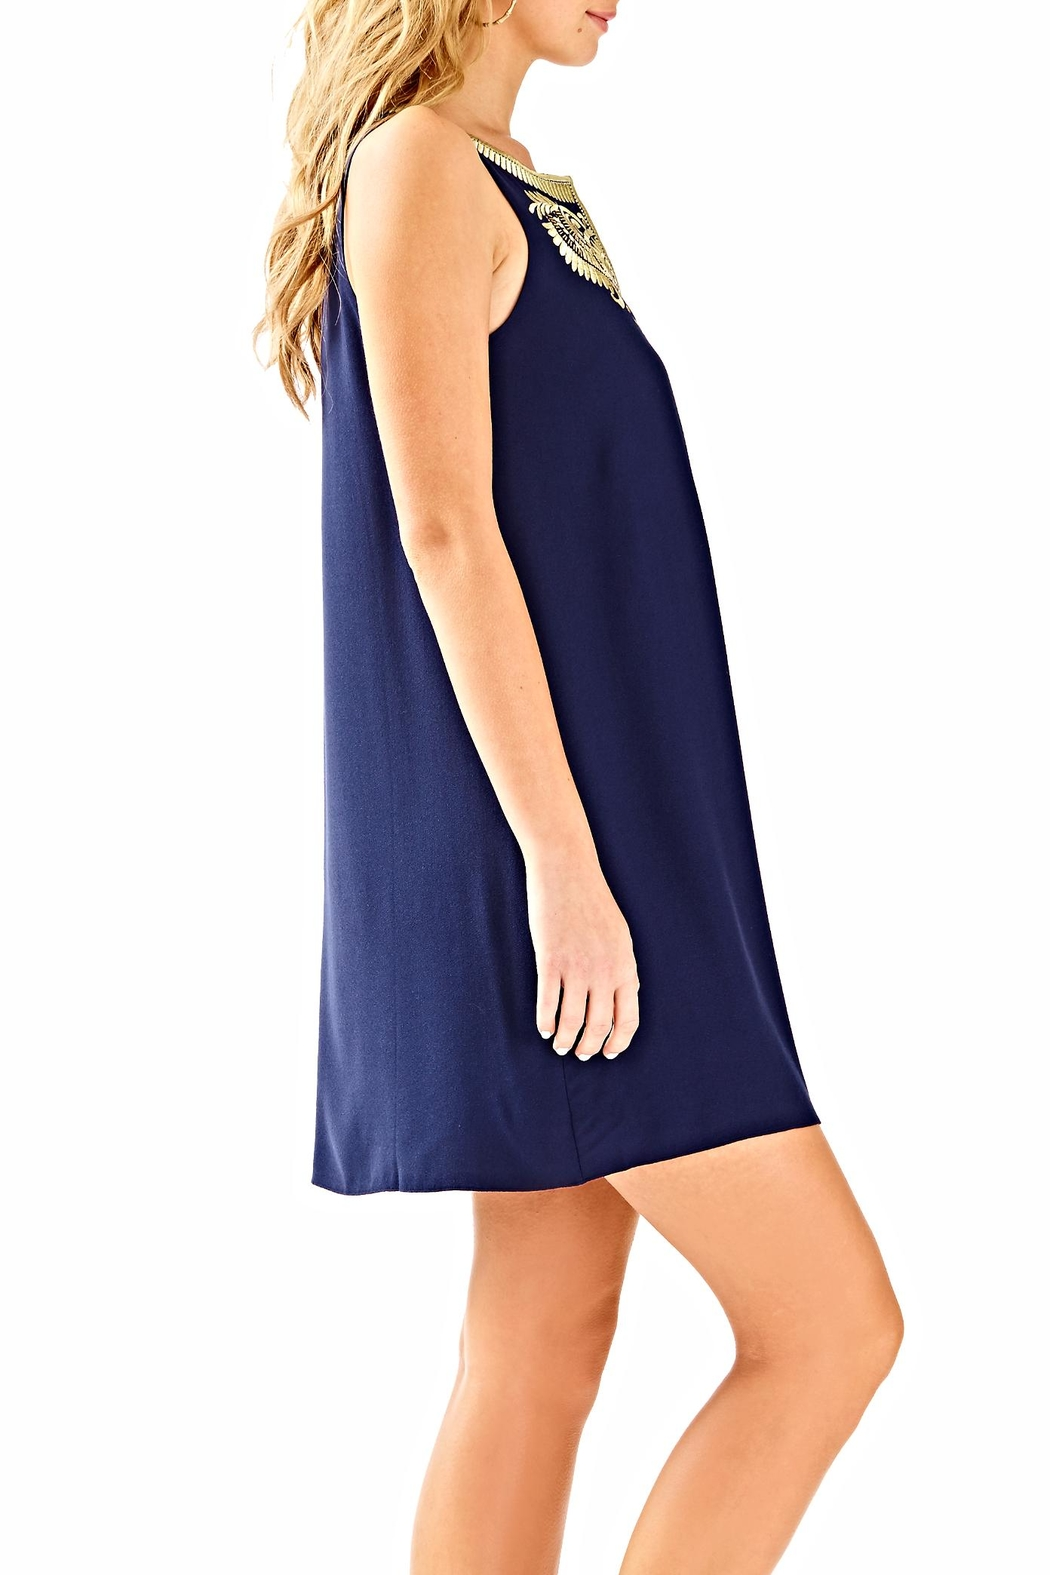 Lilly Pulitzer Aubra Shift Dress - Side Cropped Image